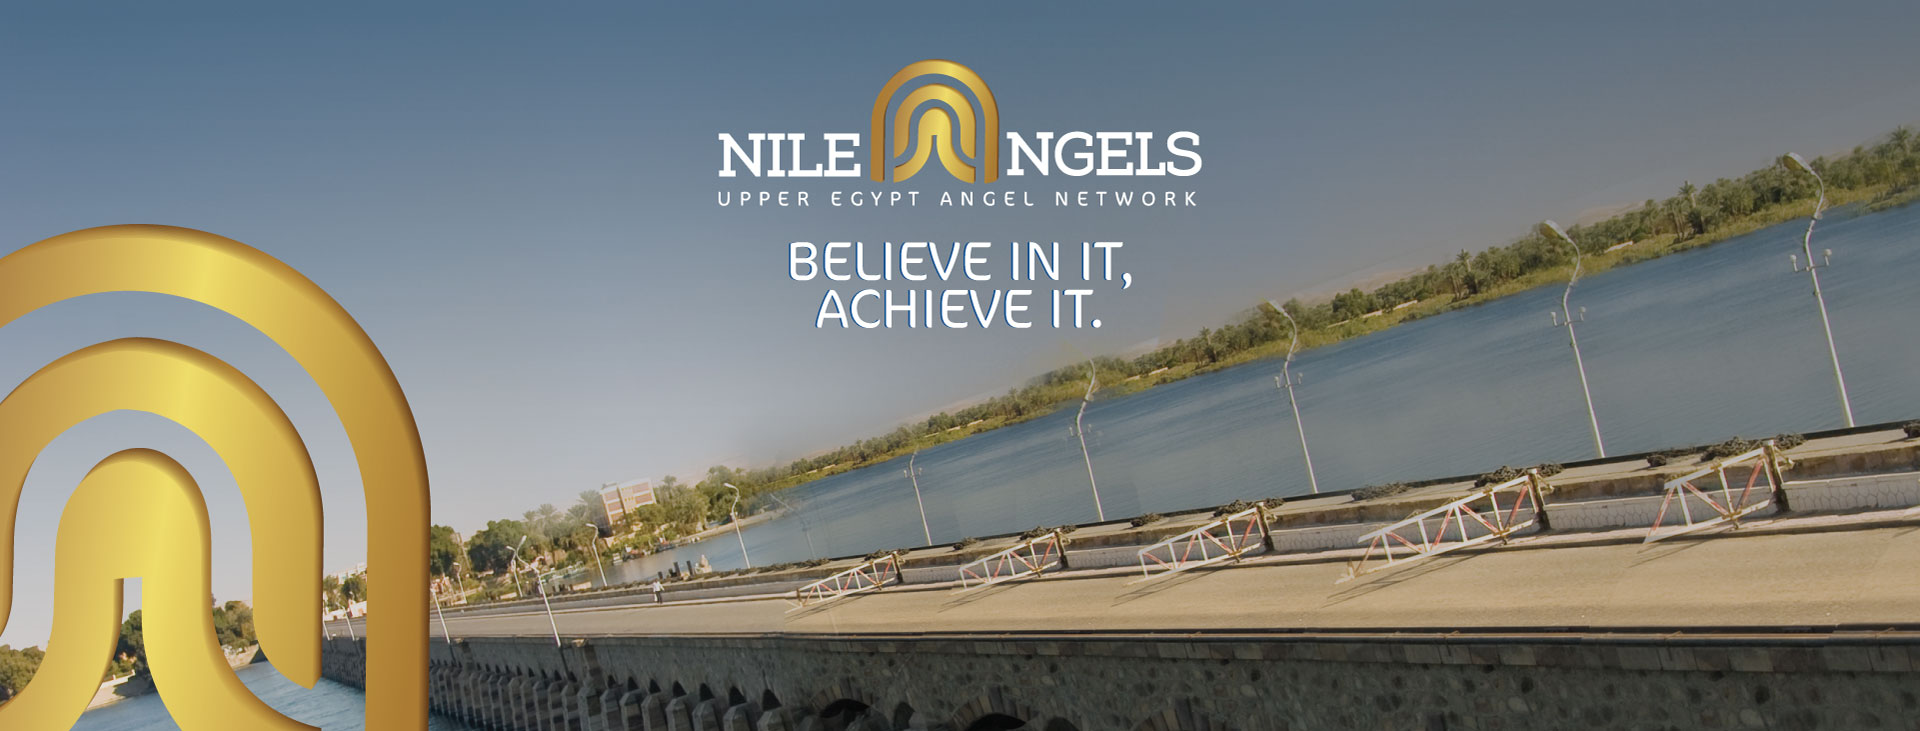 Nile Angels: The First Angel Investors Network in Upper Egypt